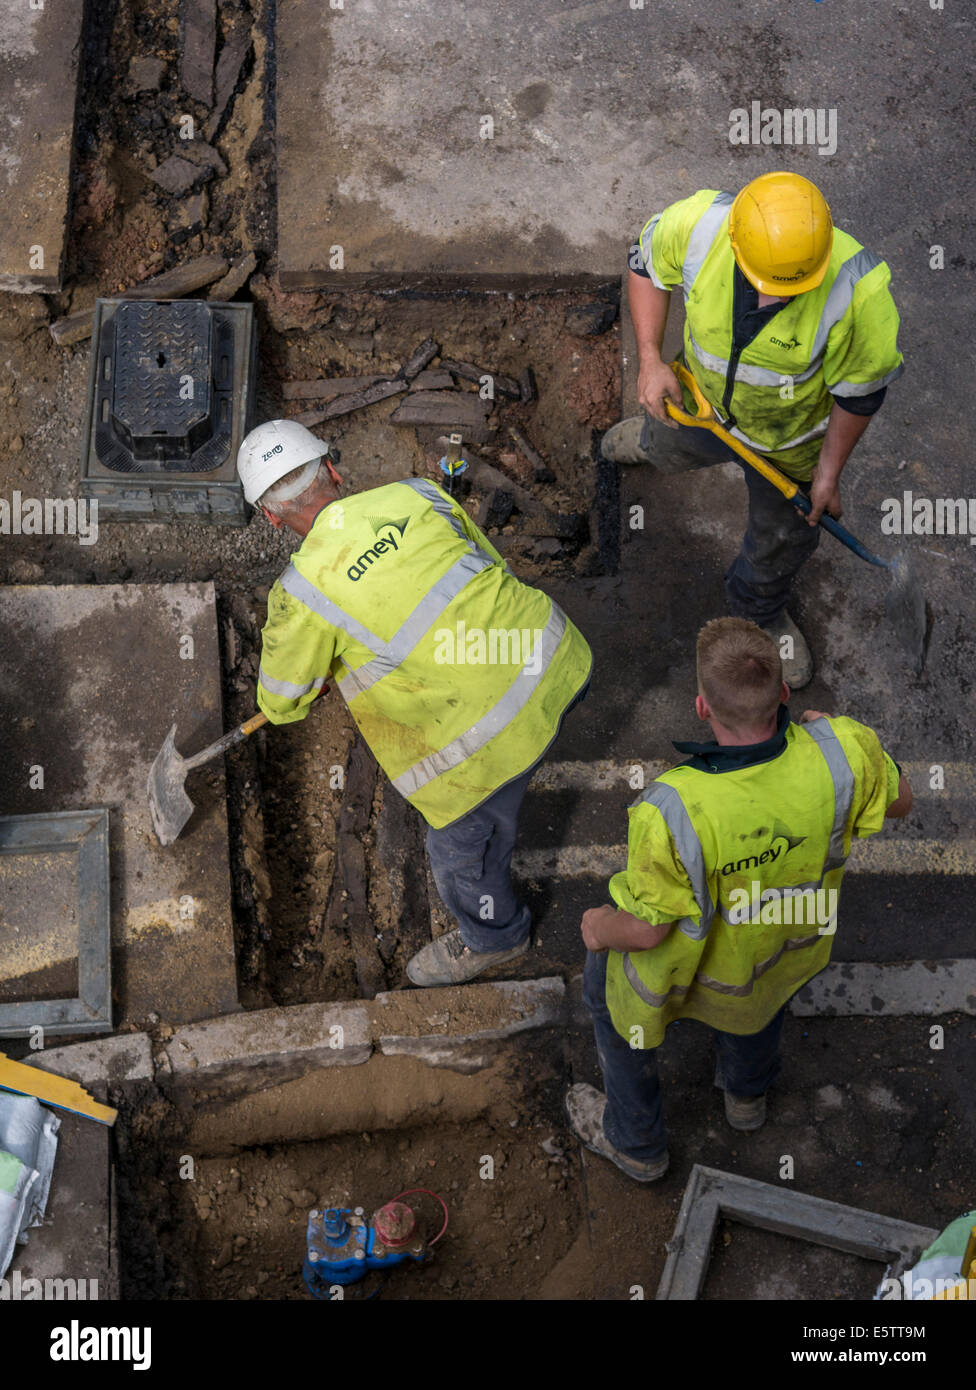 UK Roadworks Repair and replacement of underground water mains pipework by contractors - Amey - Stock Image